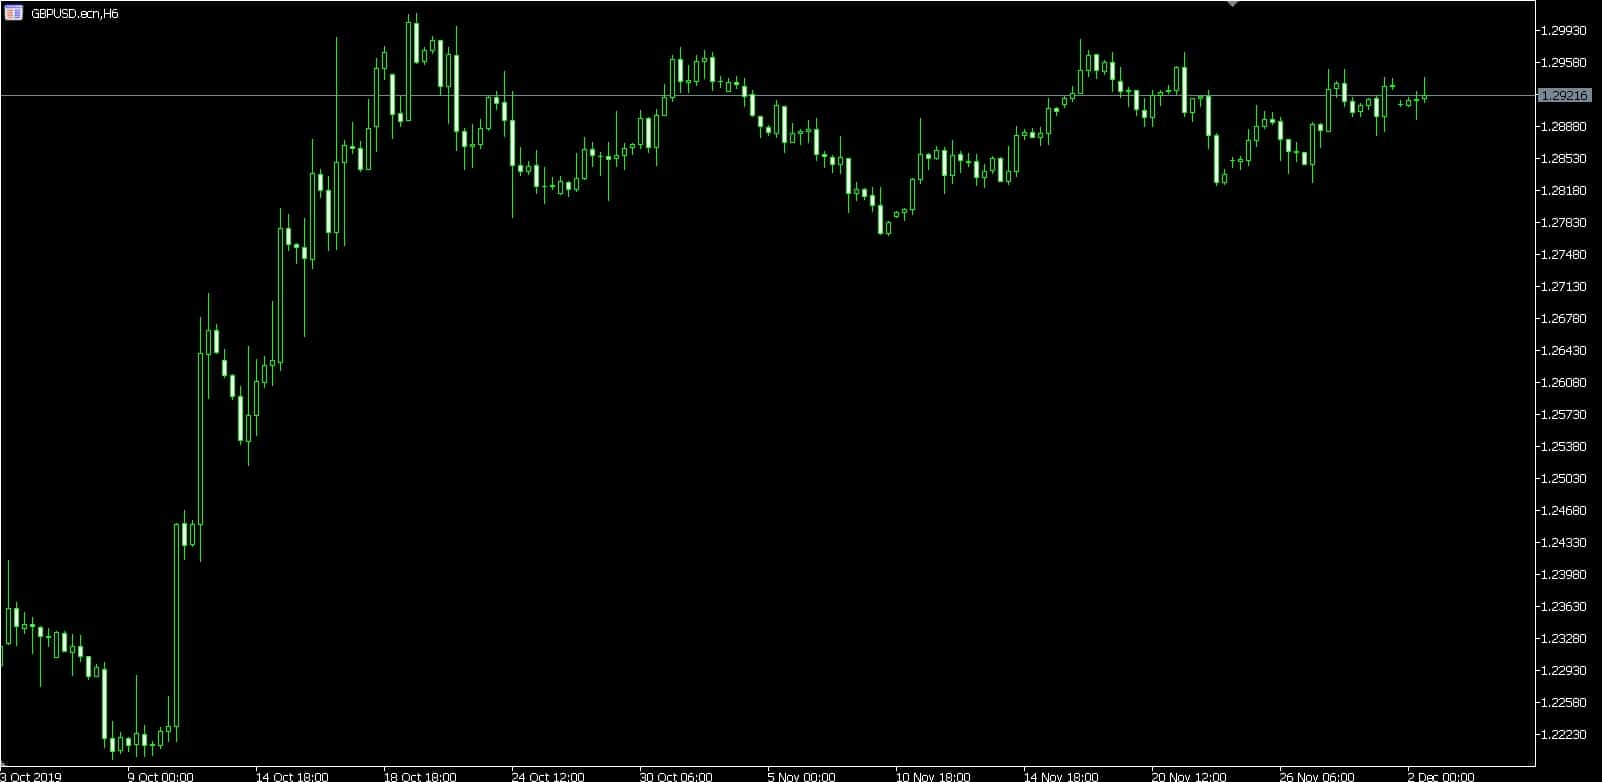 Clear chart of the MetaTrader 5 platform